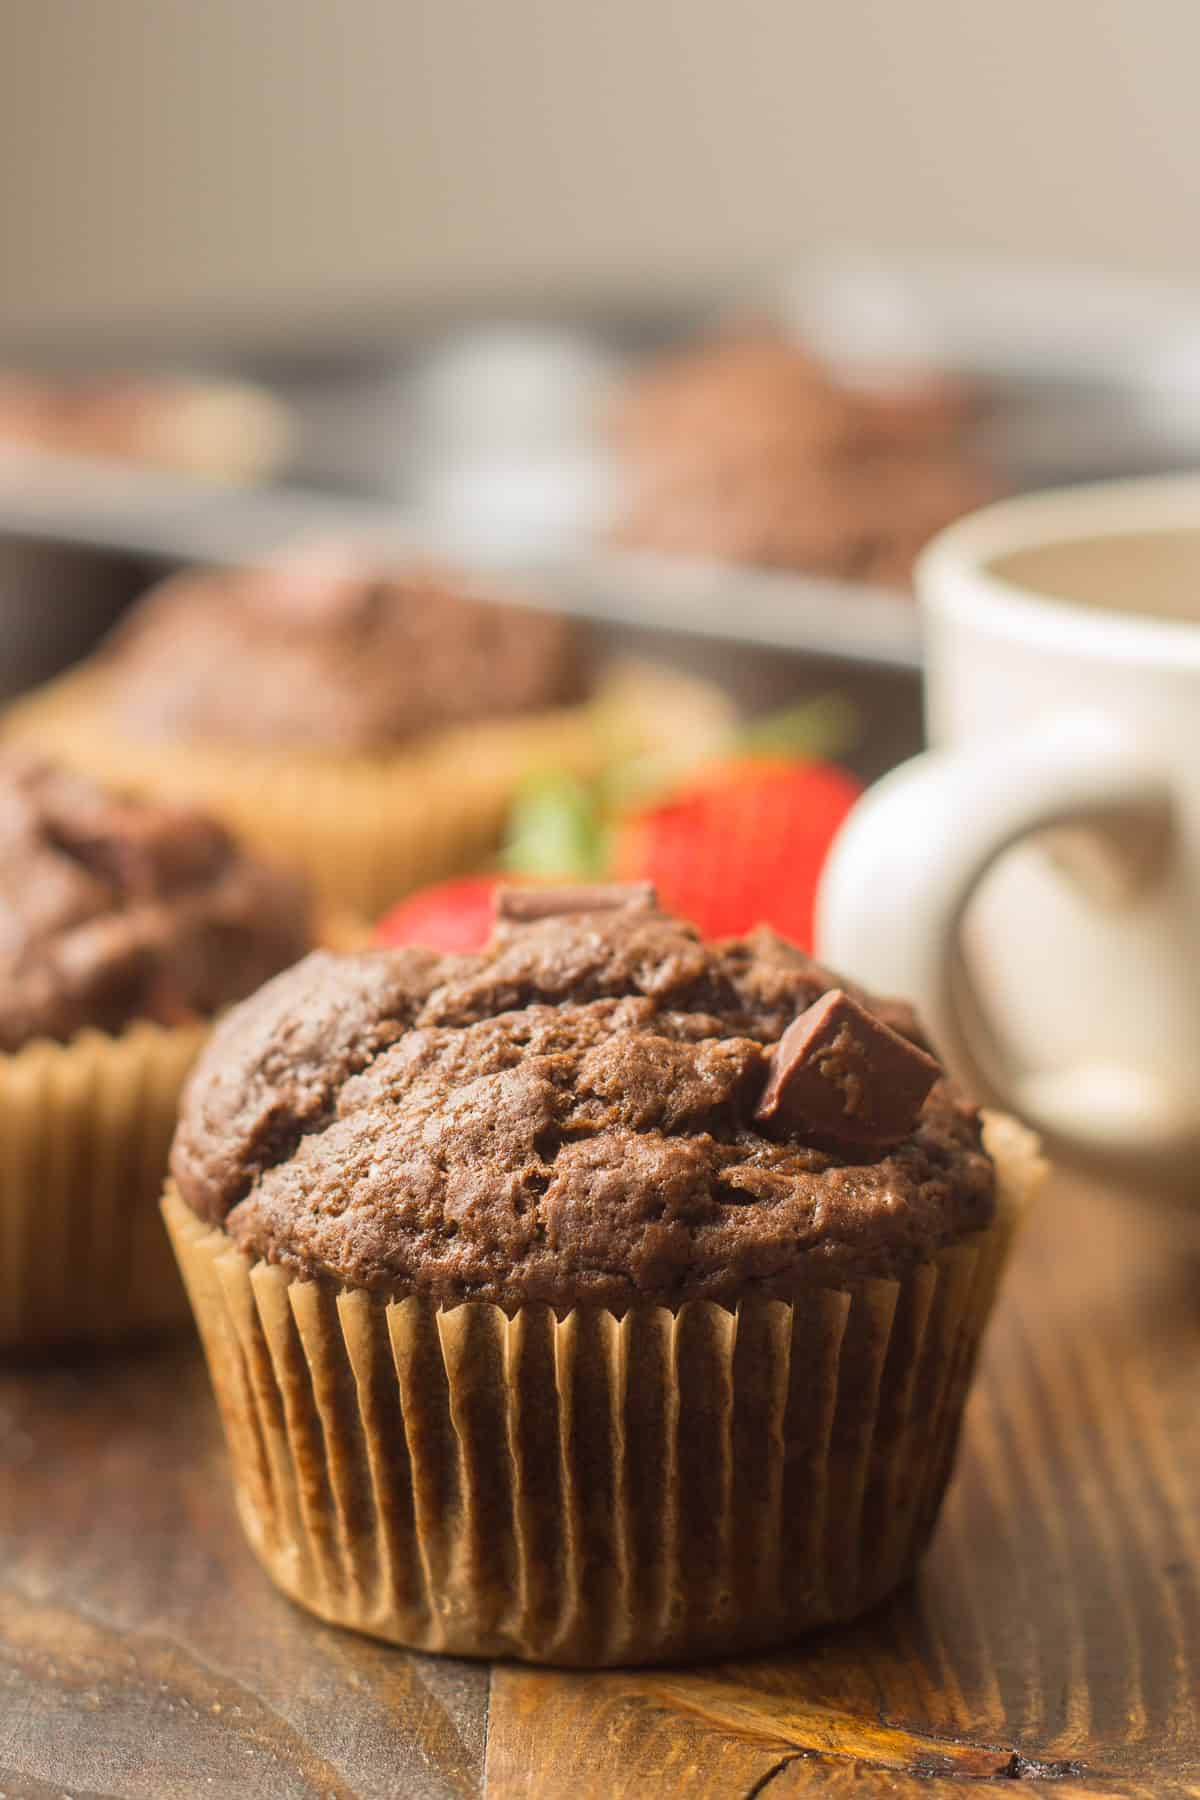 Close up of a Vegan Double Chocolate Muffin